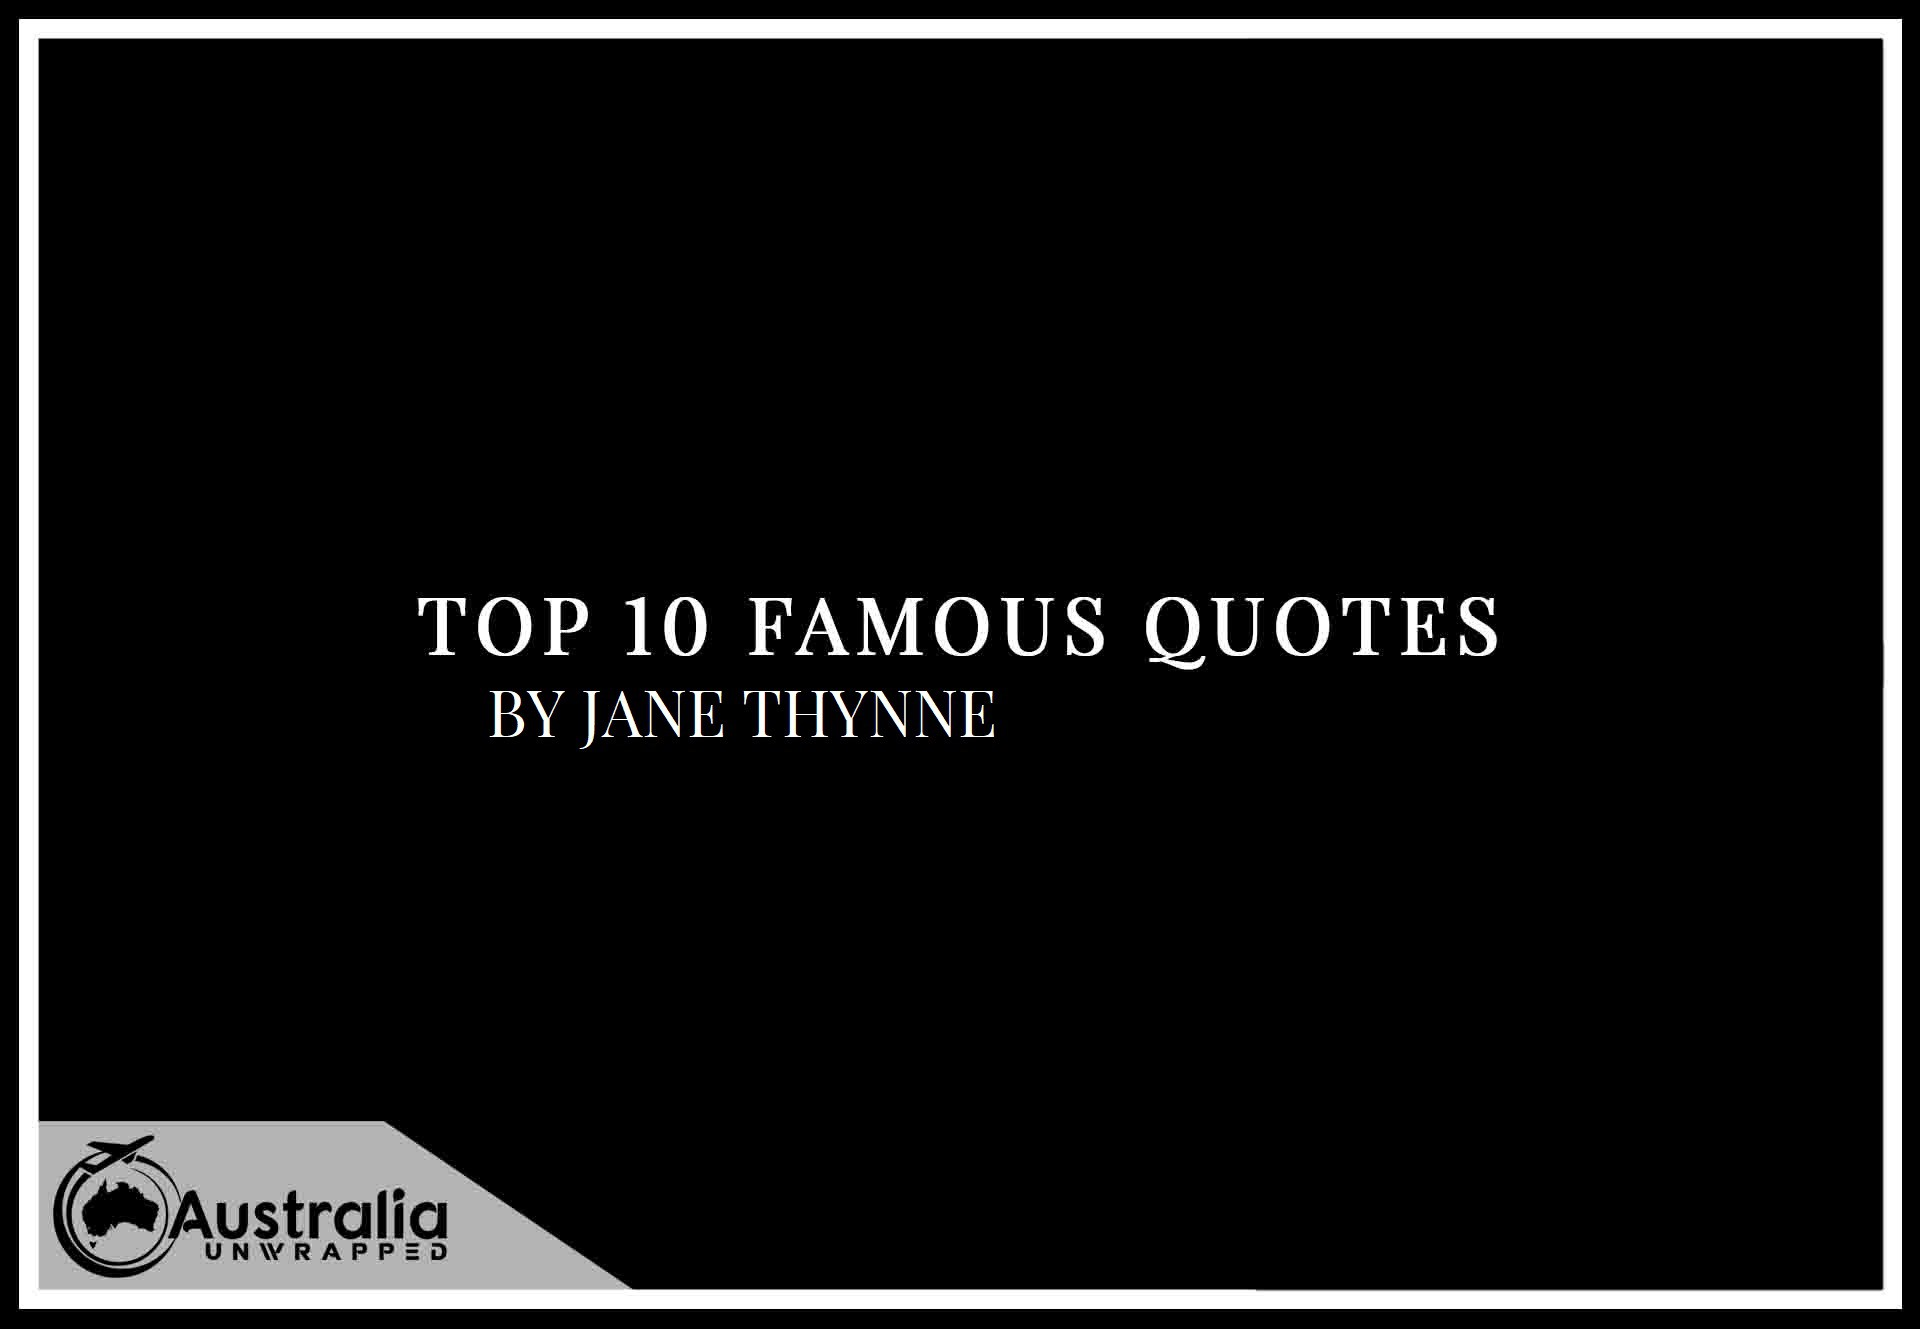 Top 10 Famous Quotes by Author Jane Thynne